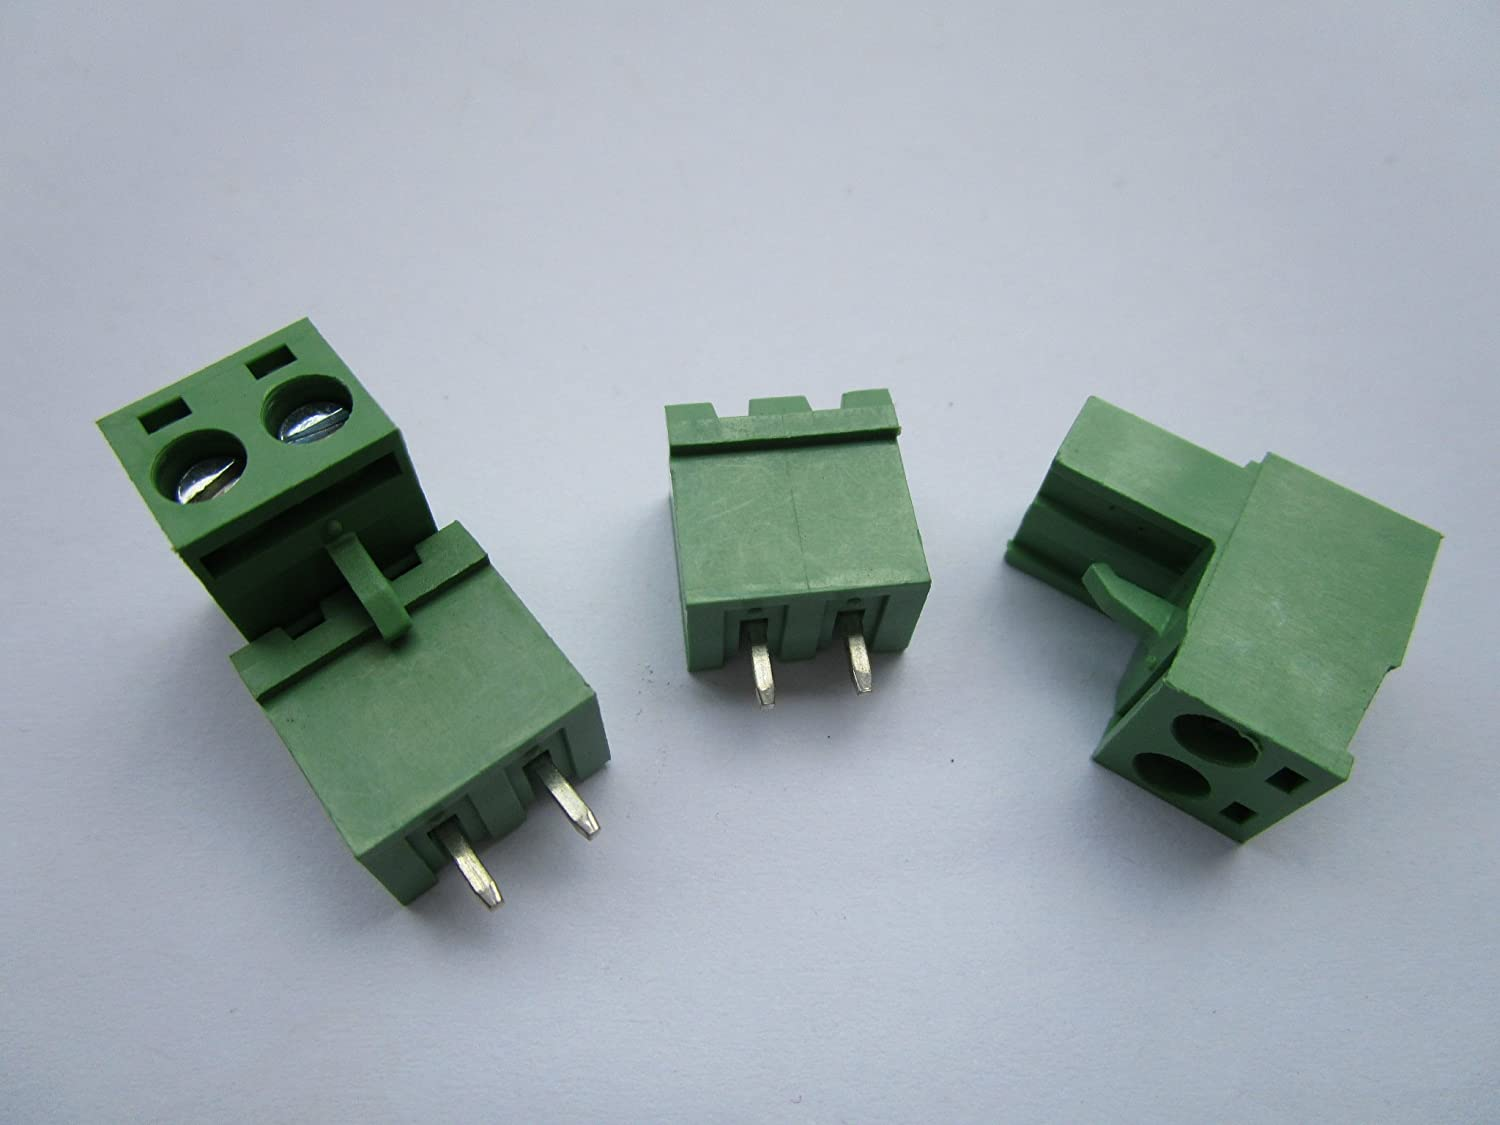 40 Pcs Close Straight 2 Pin/way Pitch 5.08mm Screw Terminal Block Connector Green Color Pluggable Type with Straight Pin